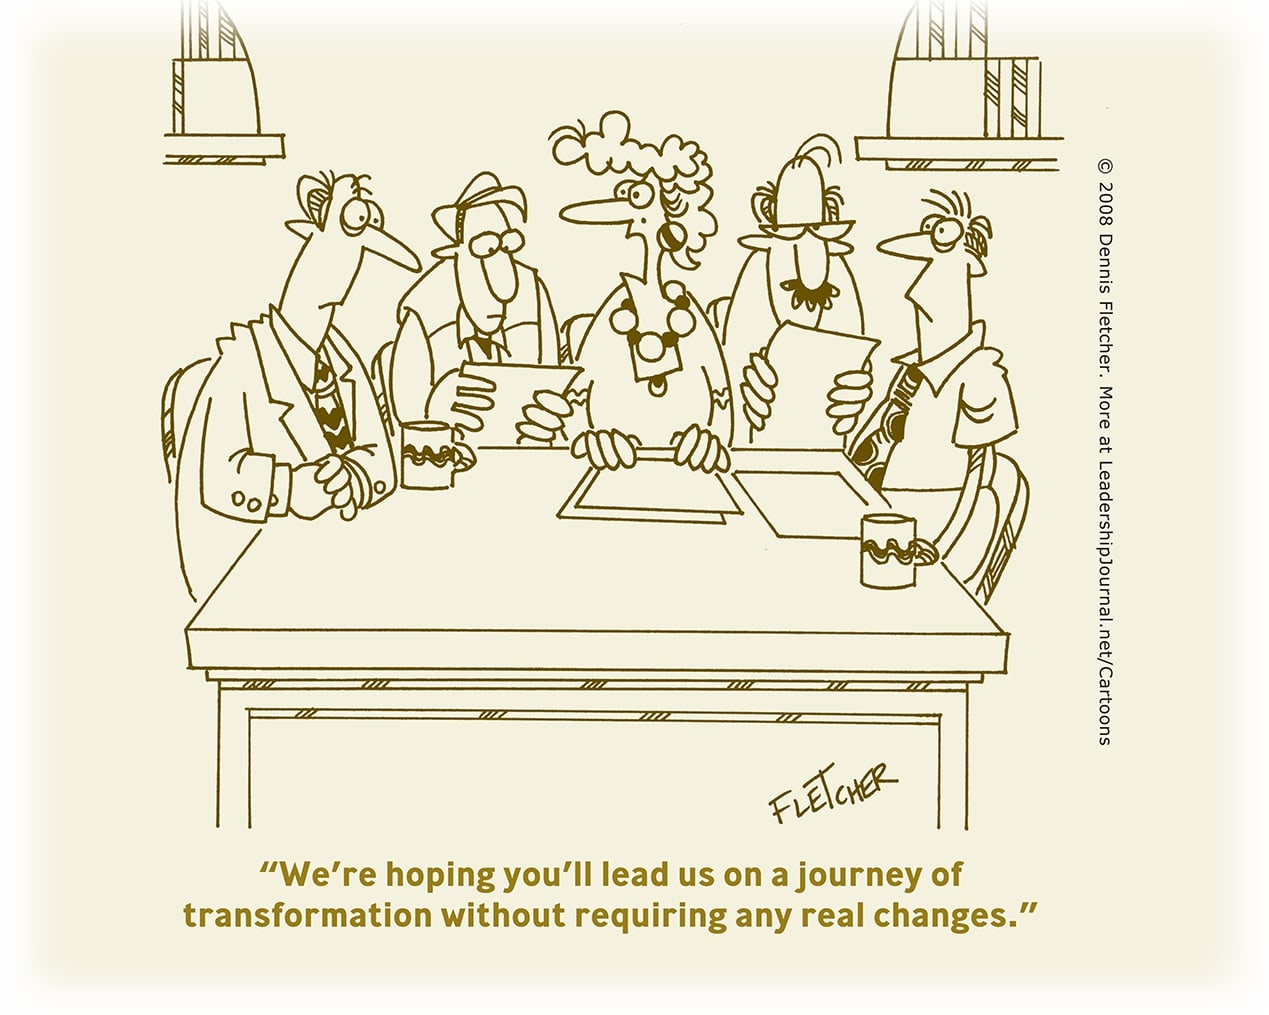 The Challenges in an Agile Transformation